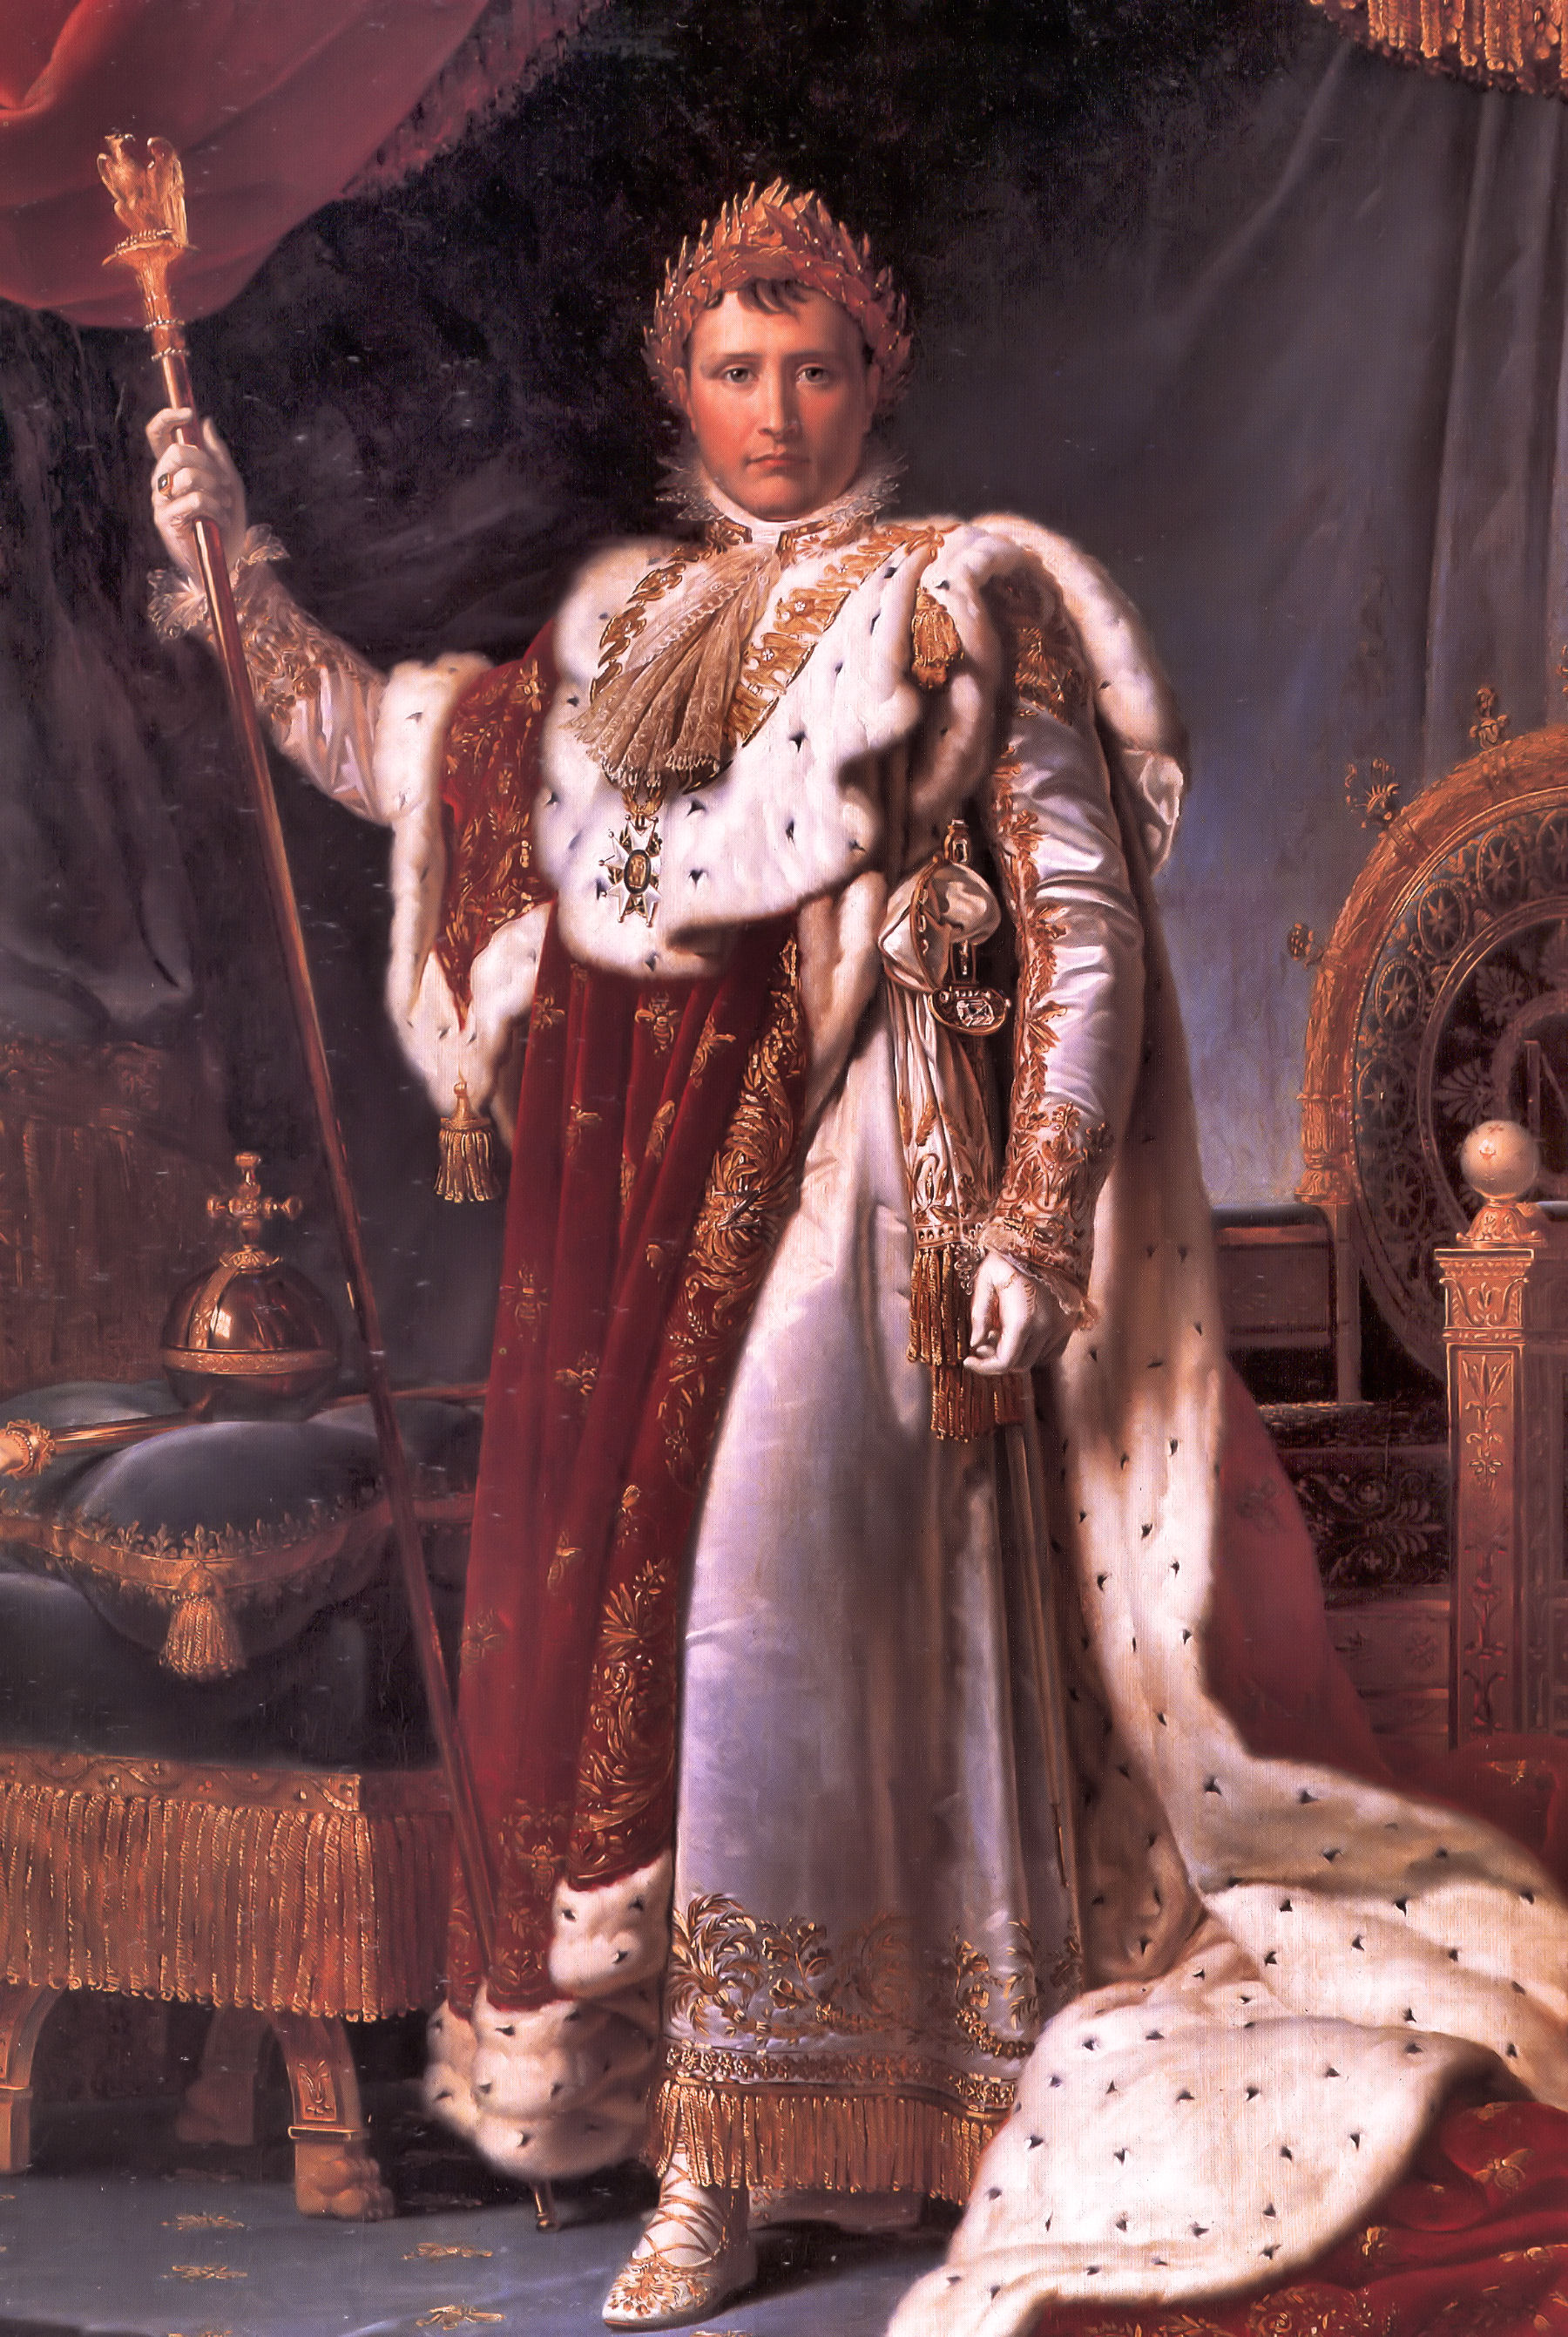 """napoleon dating 1 napoleon bonaparte - on the divinity of jesus christ, at saint helena - 1820 """"i know men and i tell you that jesus christ is not a man superficial minds see."""